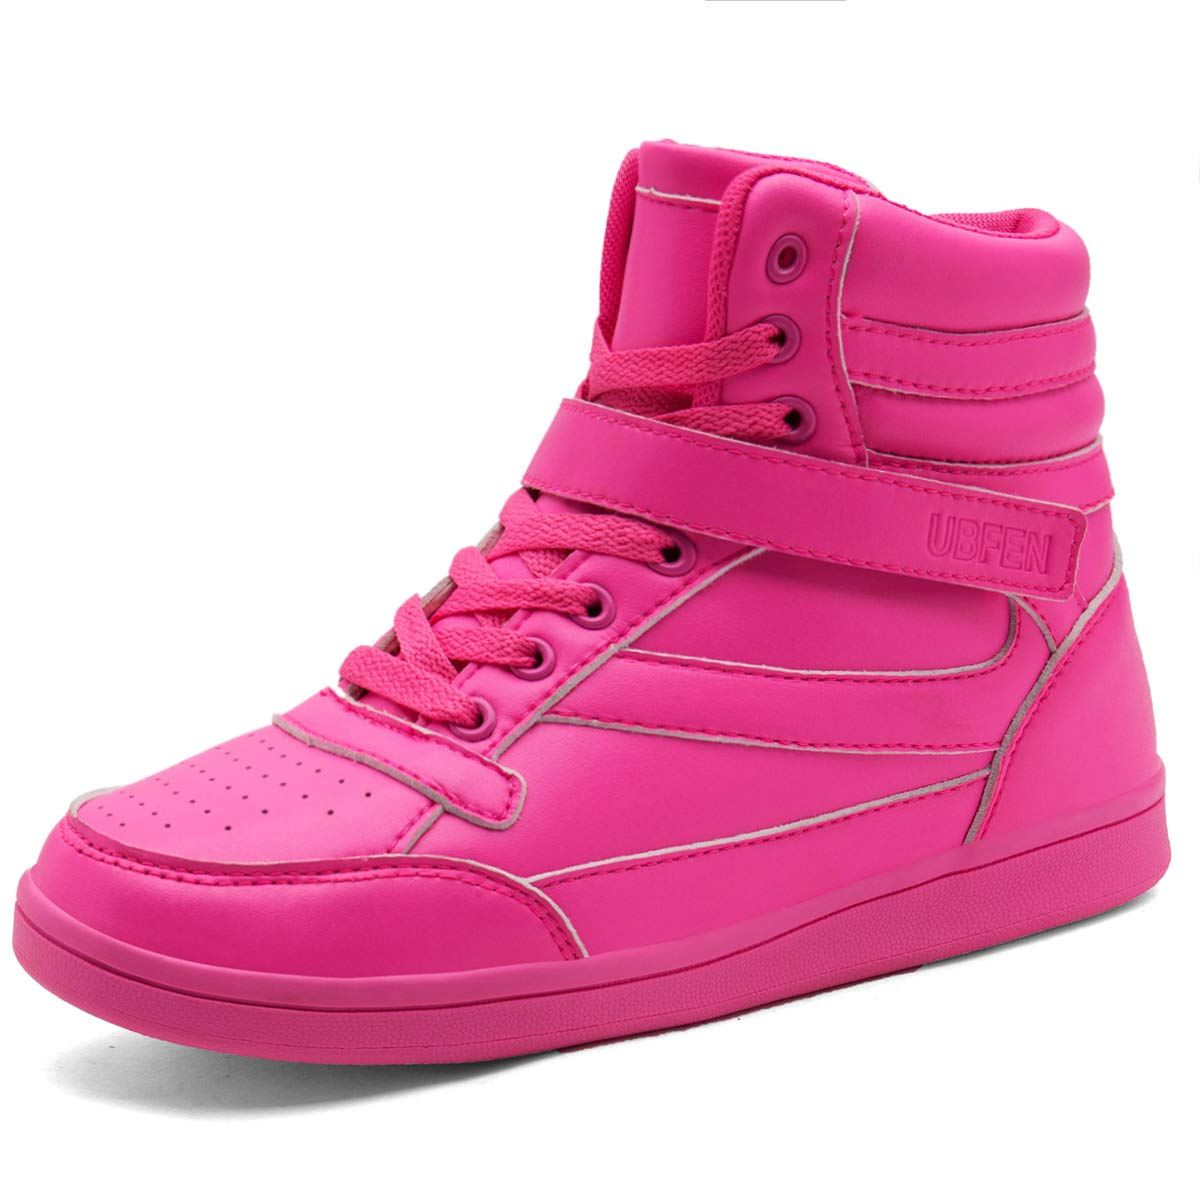 UBFEN Hidden Wedges 5.5cm Women Backpacking Boots High Top Shoes Fashion Sneakers Casual 4.5 M US Pink by UBFEN